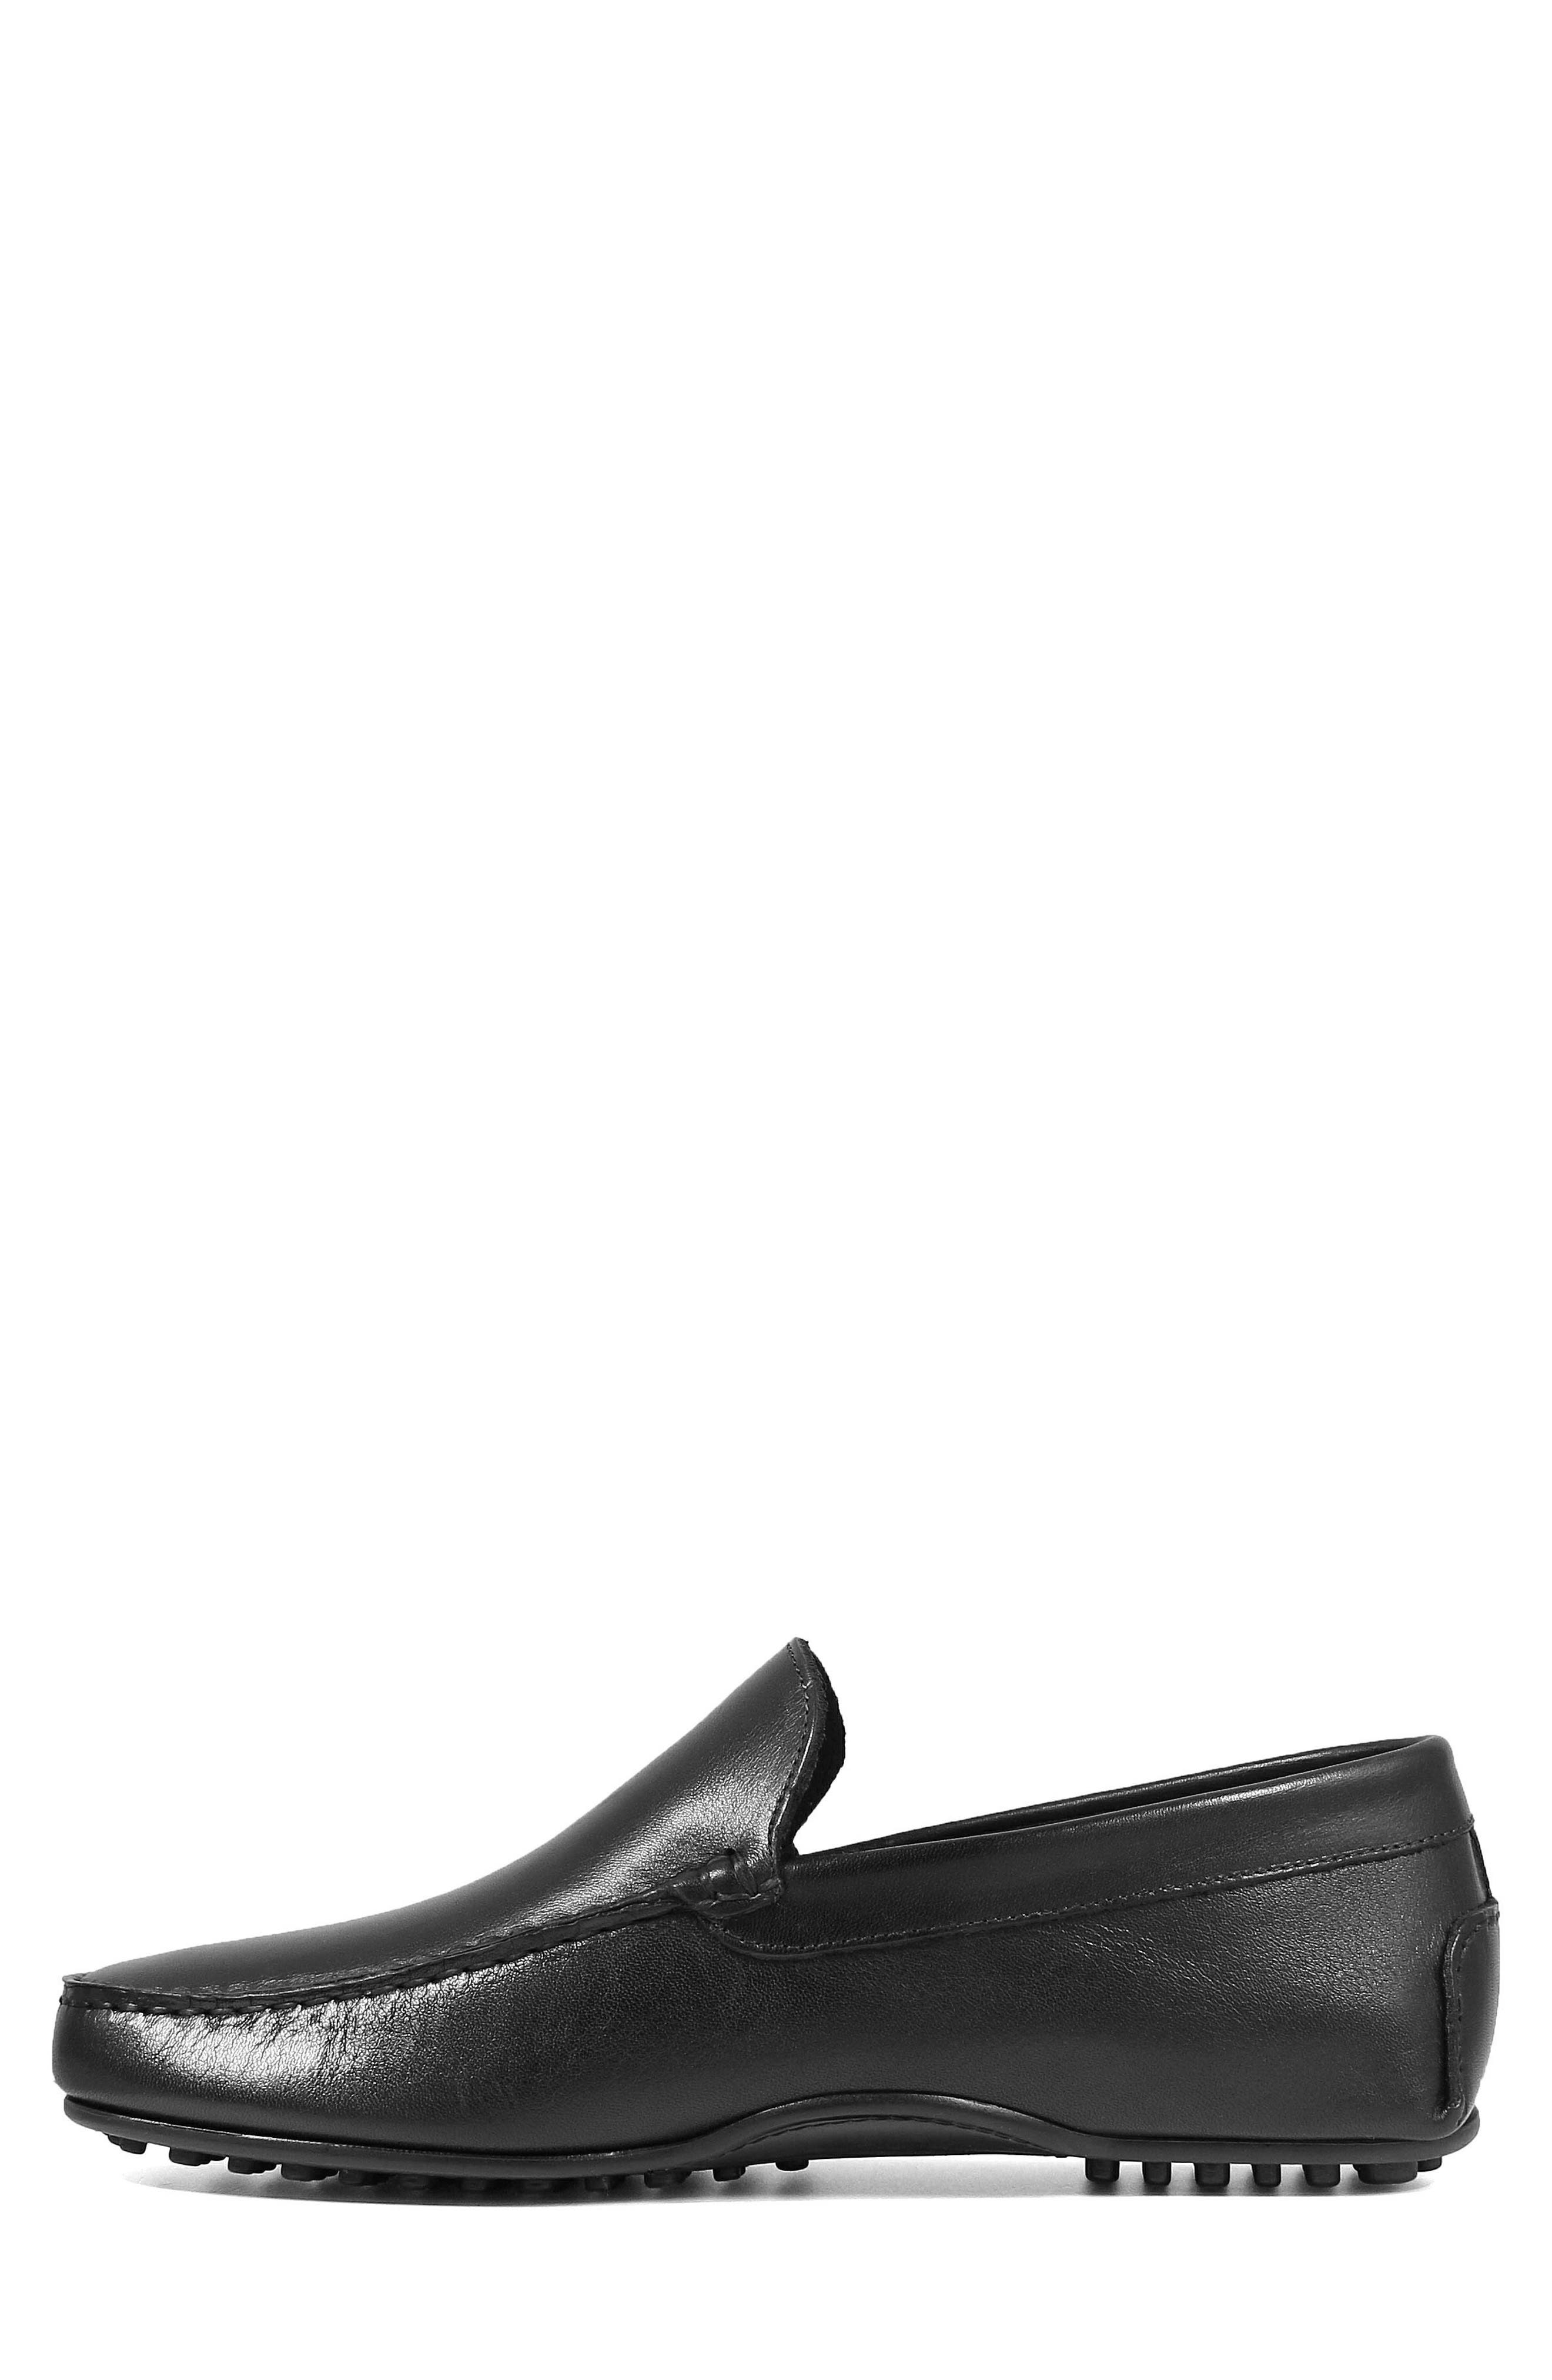 Navono Driving Moccasin,                             Alternate thumbnail 8, color,                             BLACK LEATHER